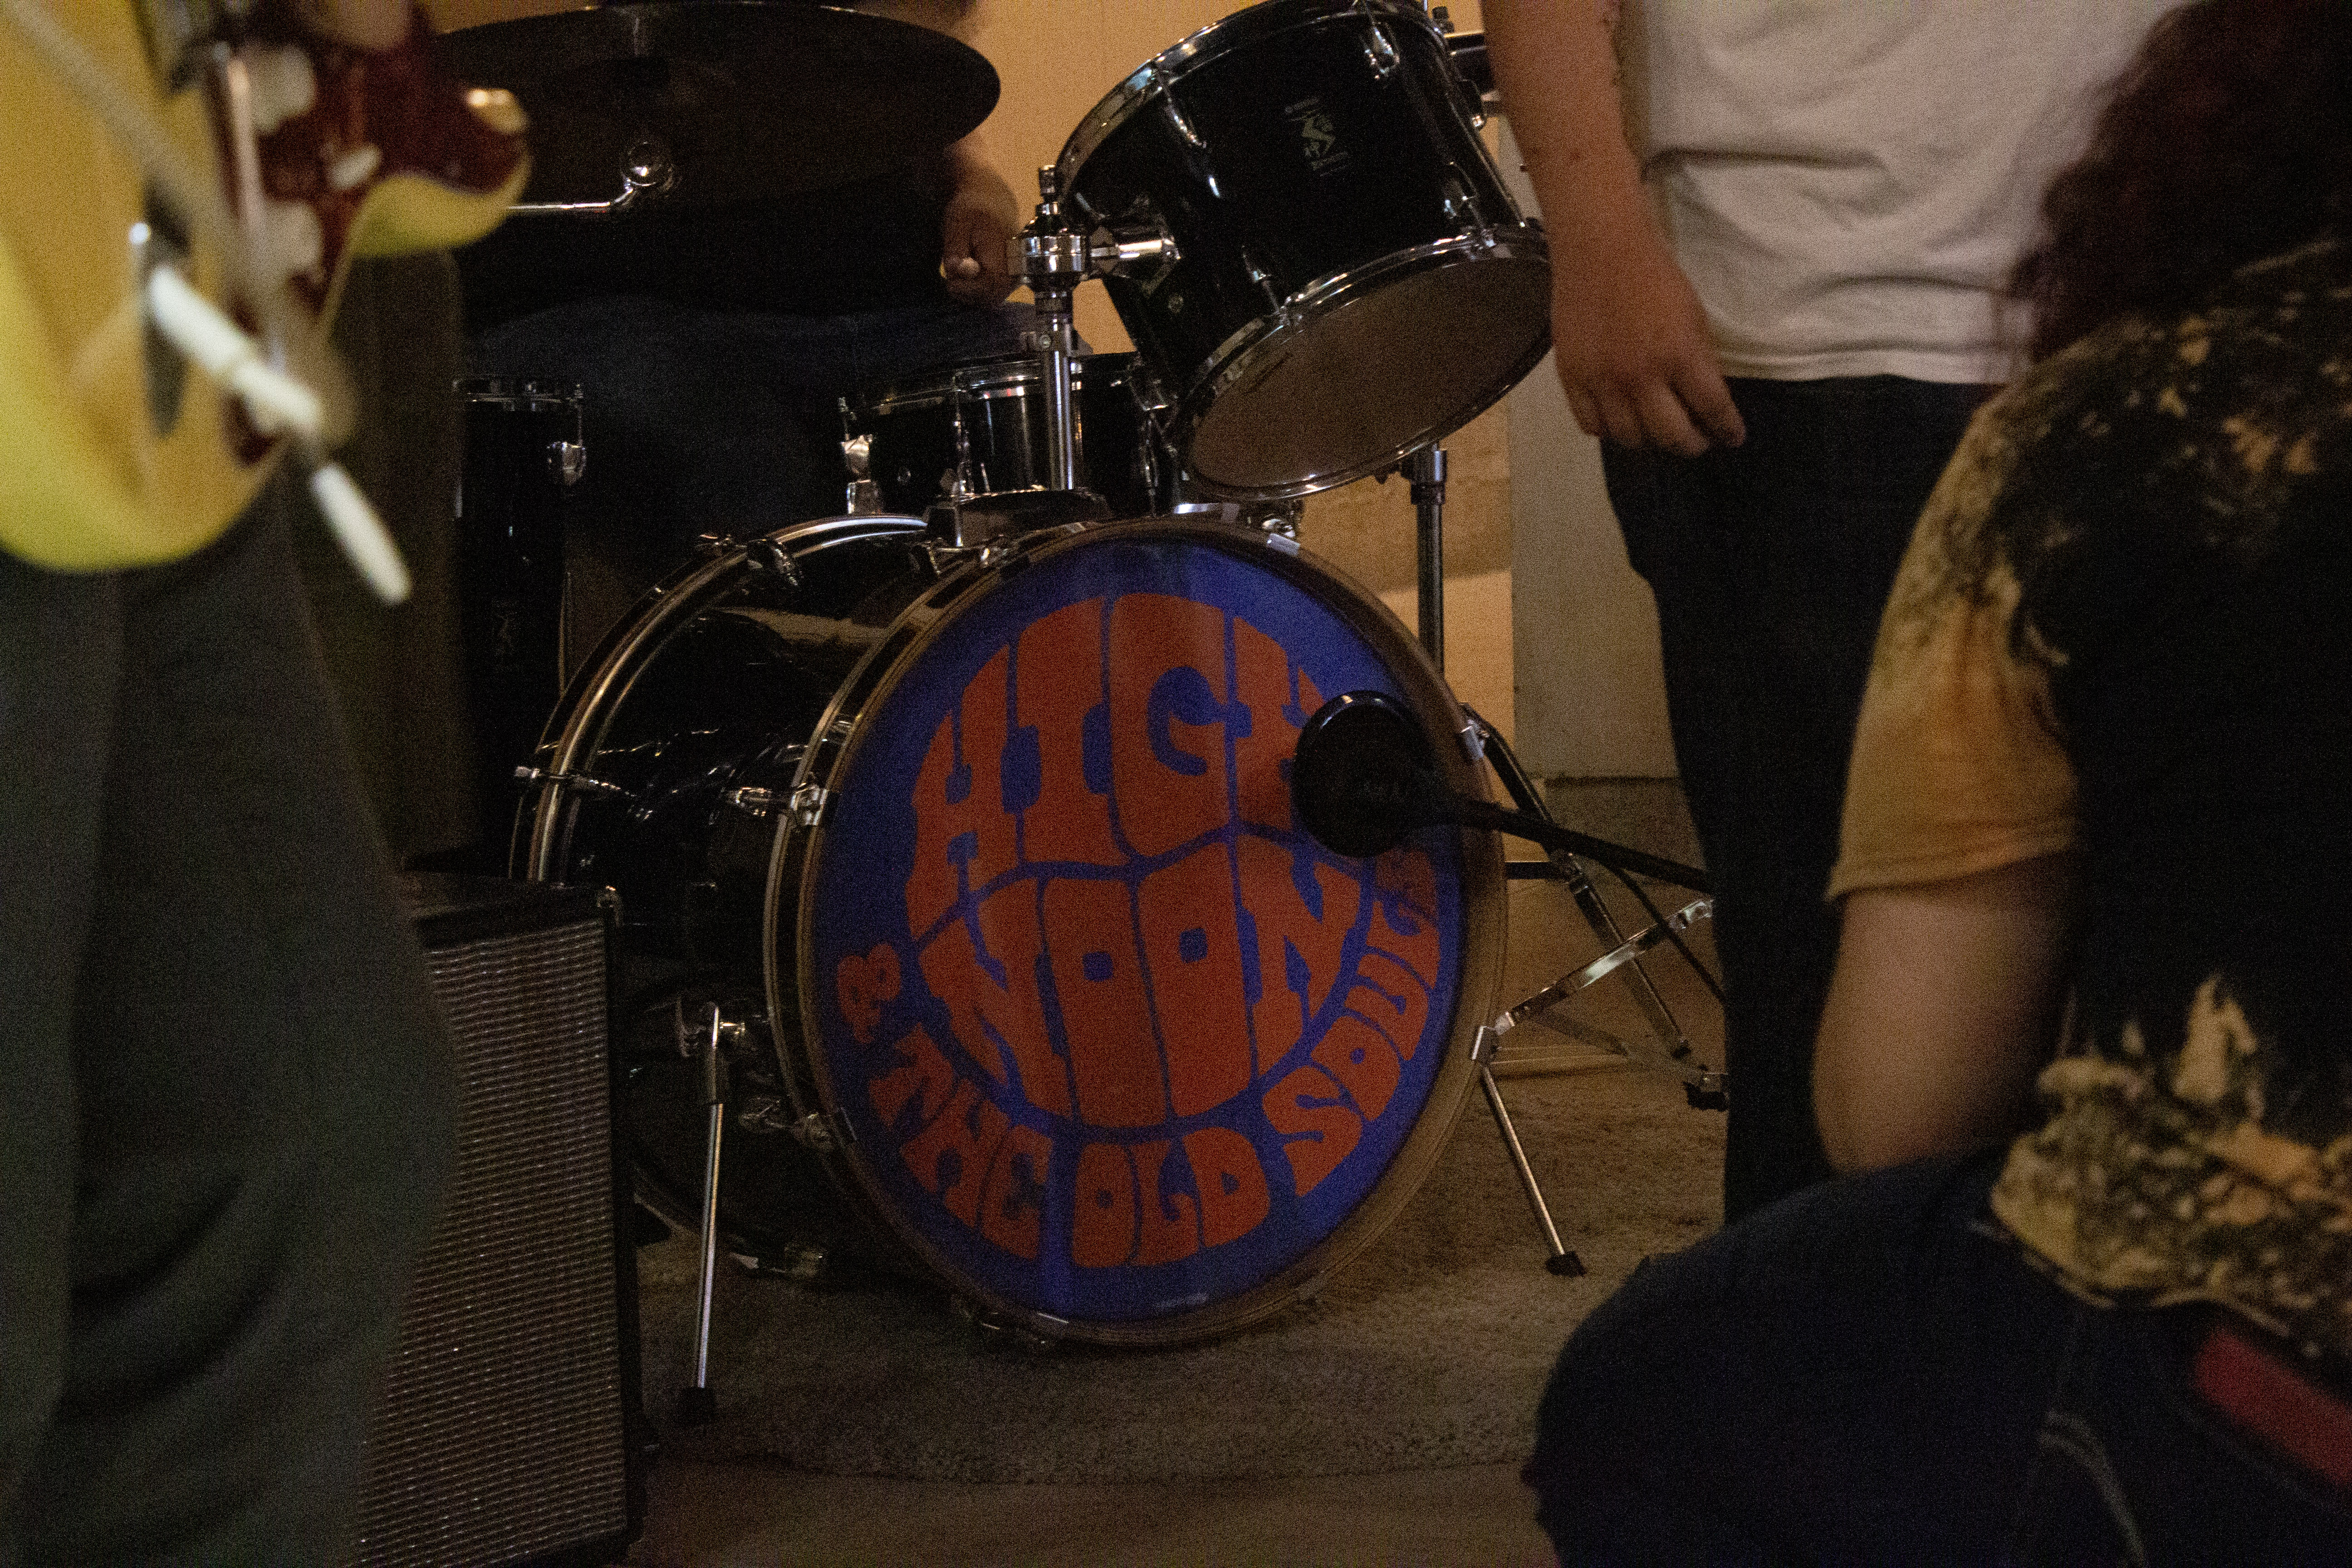 the photo is centered on the bass drum of the drum kist, featuring a logo of the band's name, High Noon and the Old Souls. Band members are gathered around the kit, setting up their respective instruments